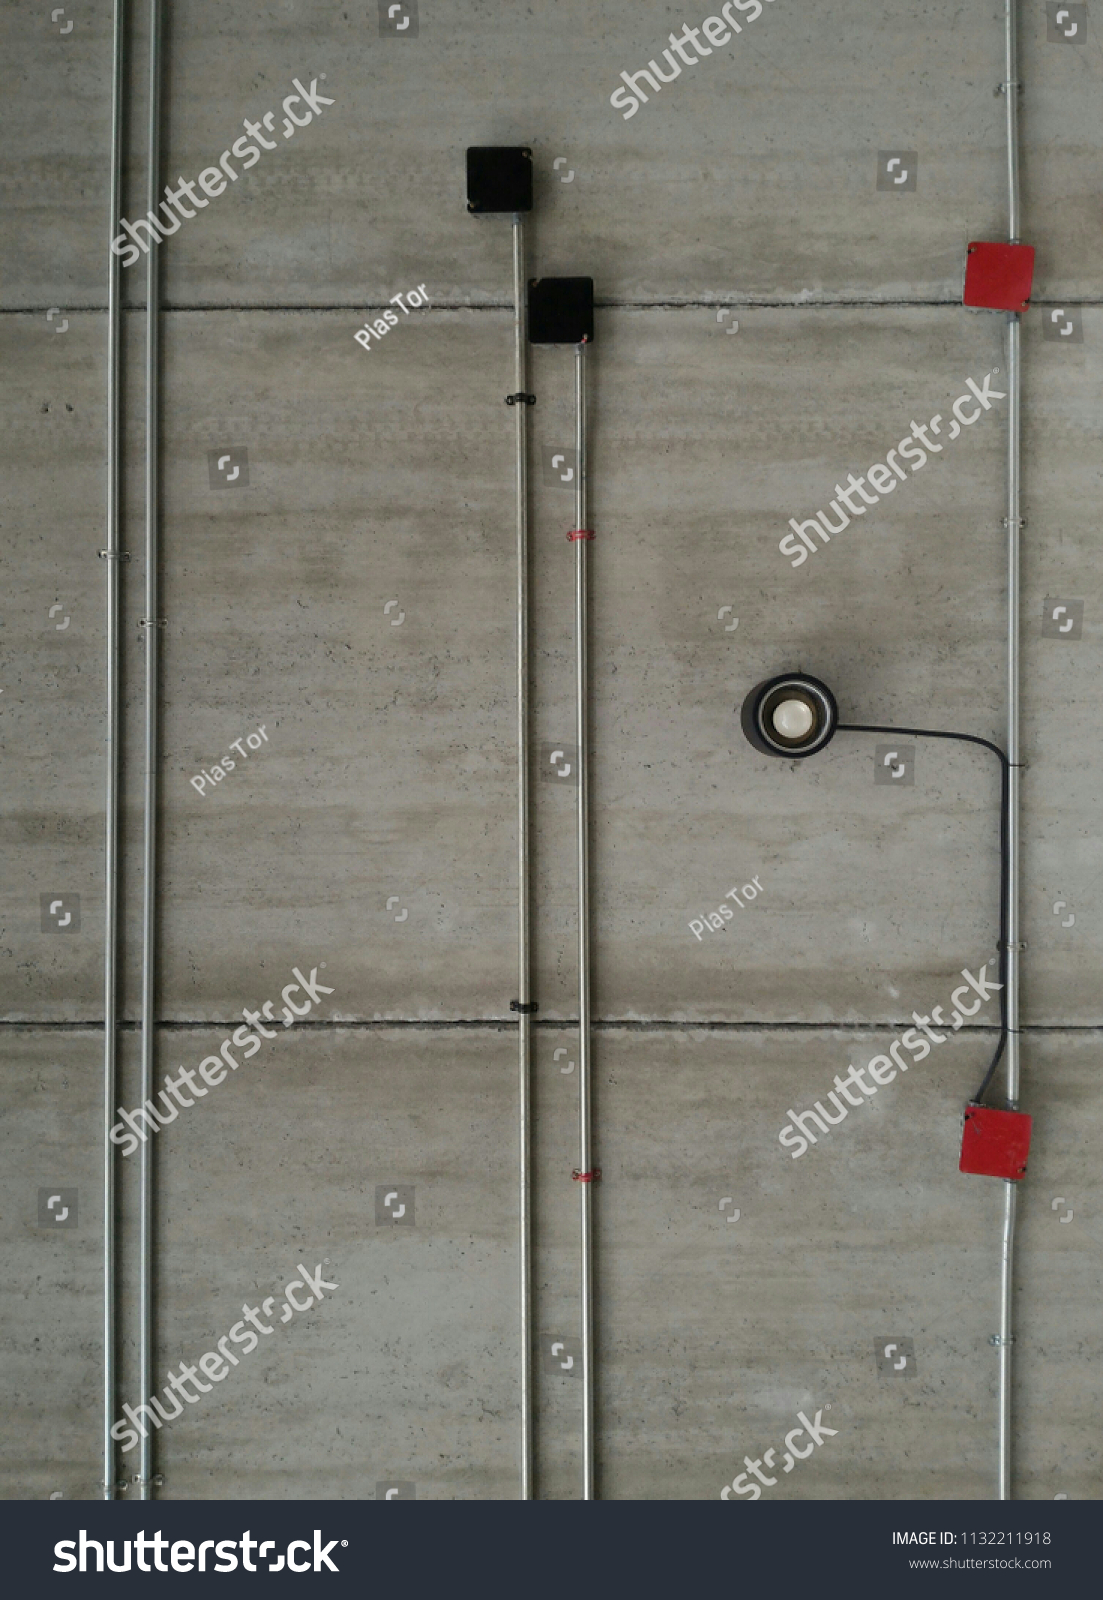 Exposed Electrical Metal Conduit Downlight Installation Stock Photo For Safe Wiring Explained By An And On Bottom Of Dirty Stained Streaky Bare Concrete Plank